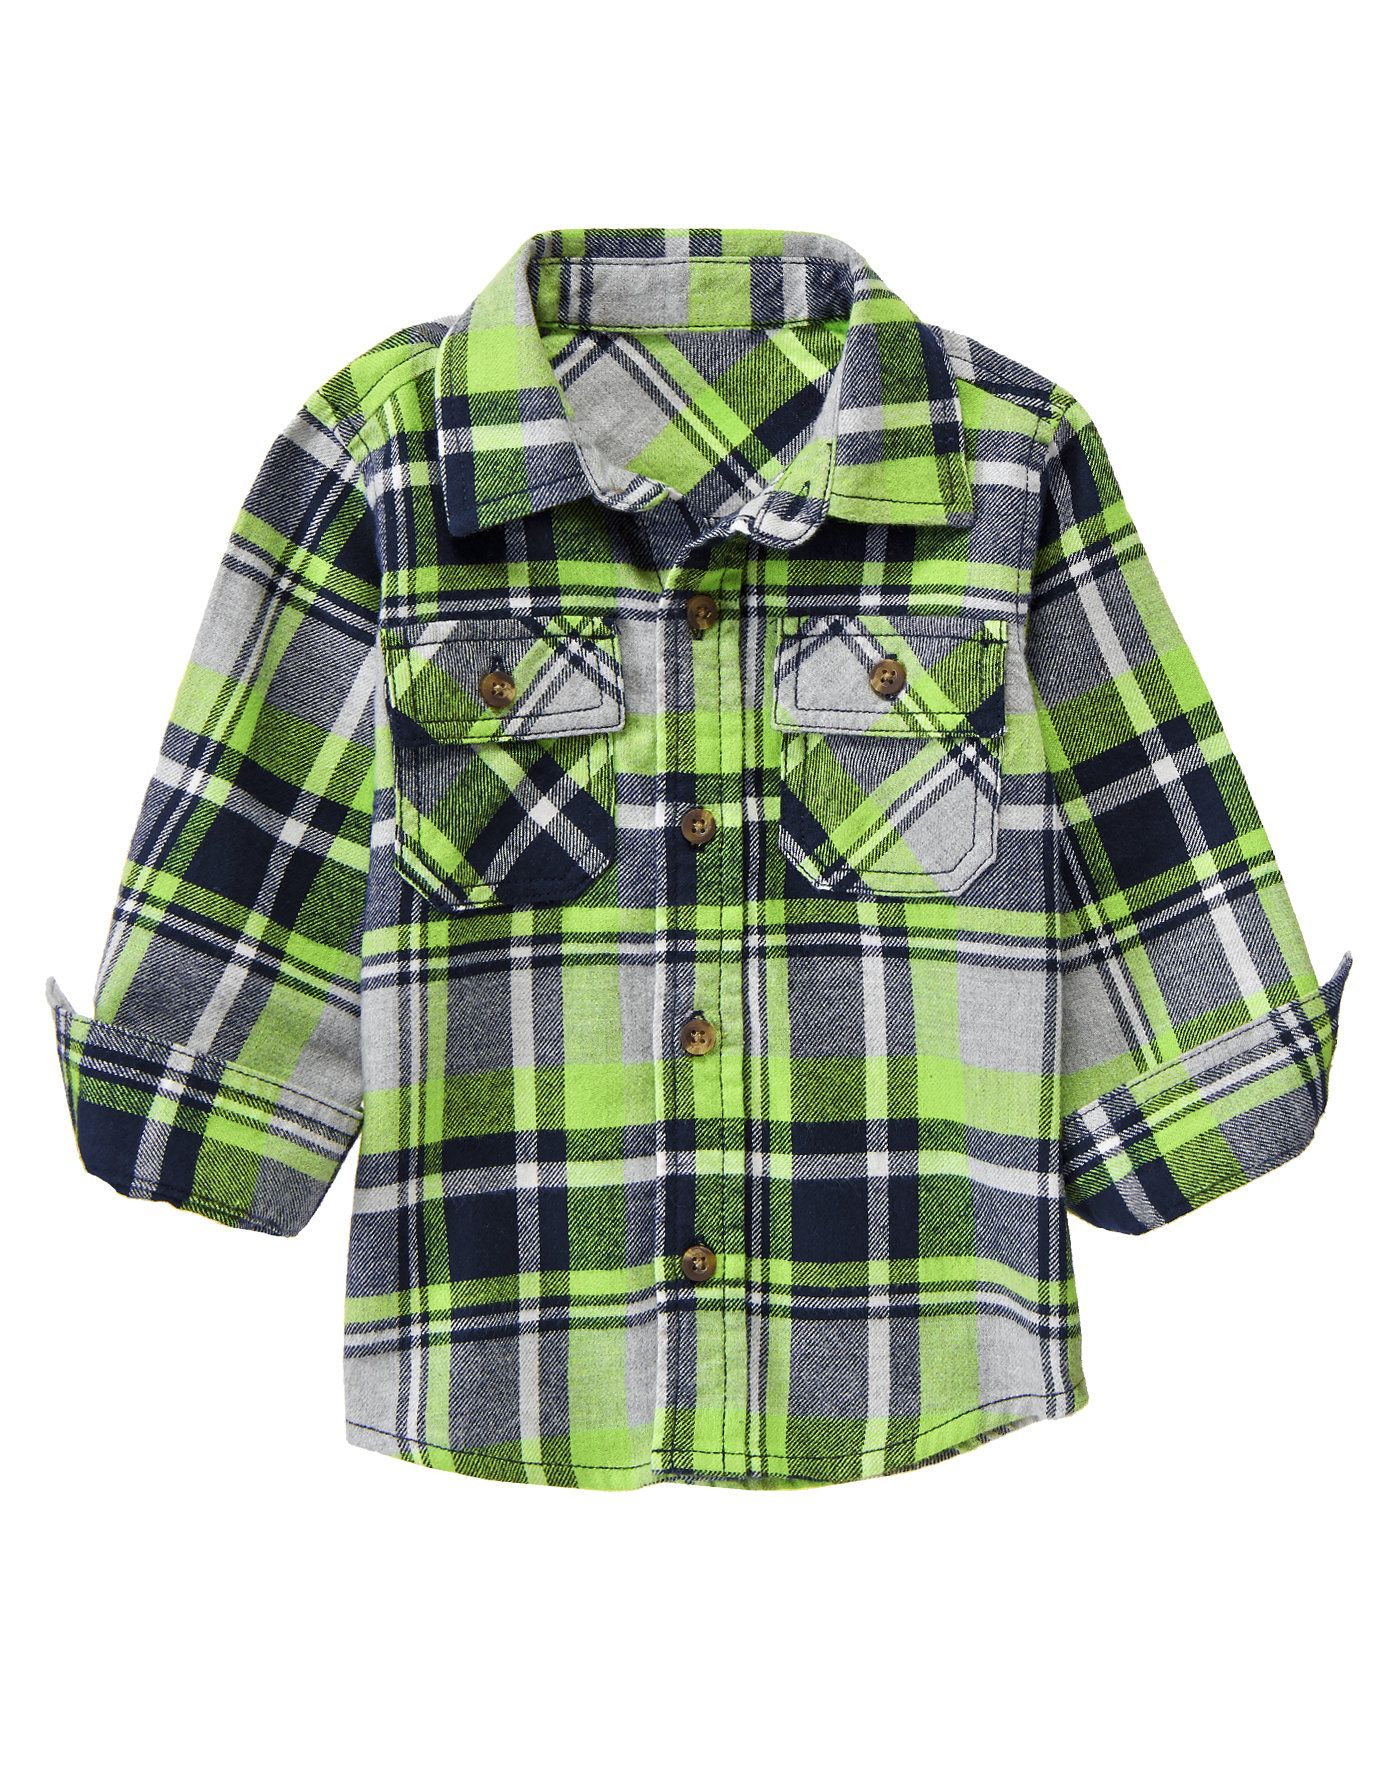 Flannel shirt for baby boy  Plaid Flannel Shirt at Crazy  Crazy  mT  All Bout my KiDS